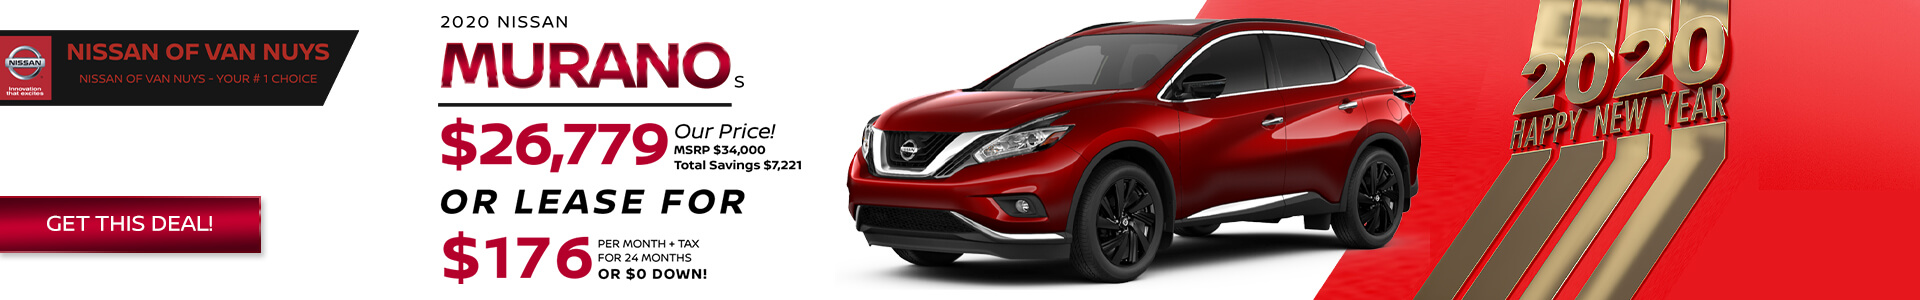 Nissan Murano - Lease for $176